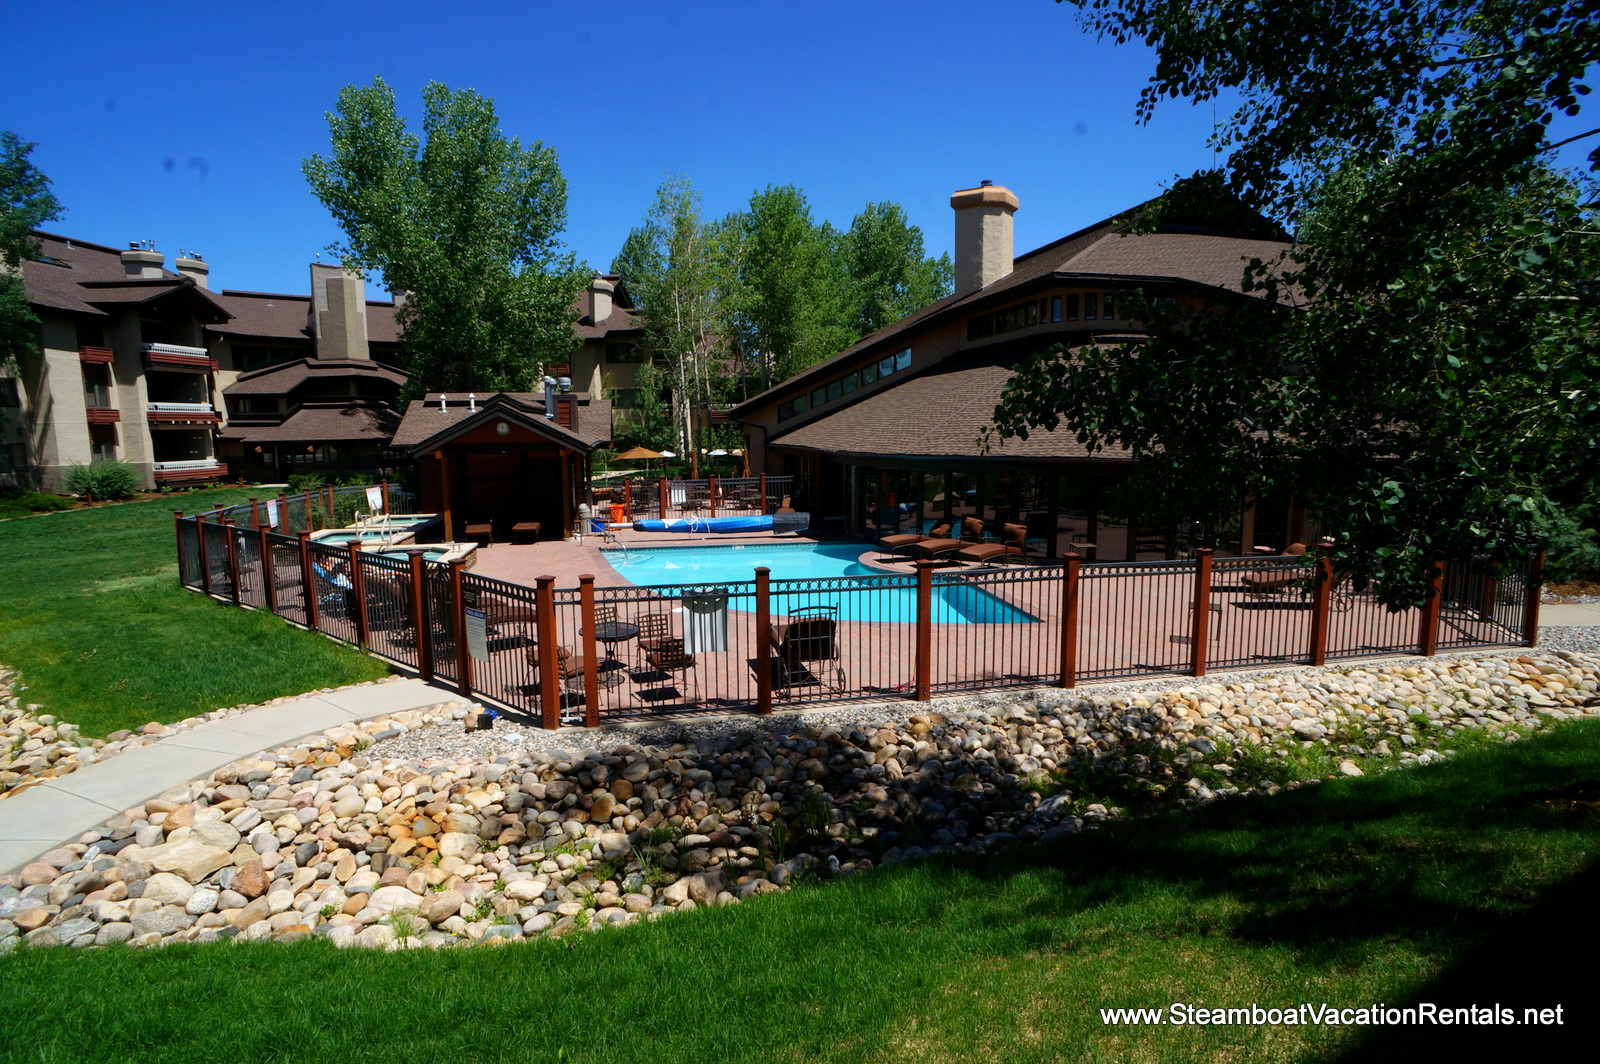 Steamboat Vacation Rentals Find Family Friendly Condos